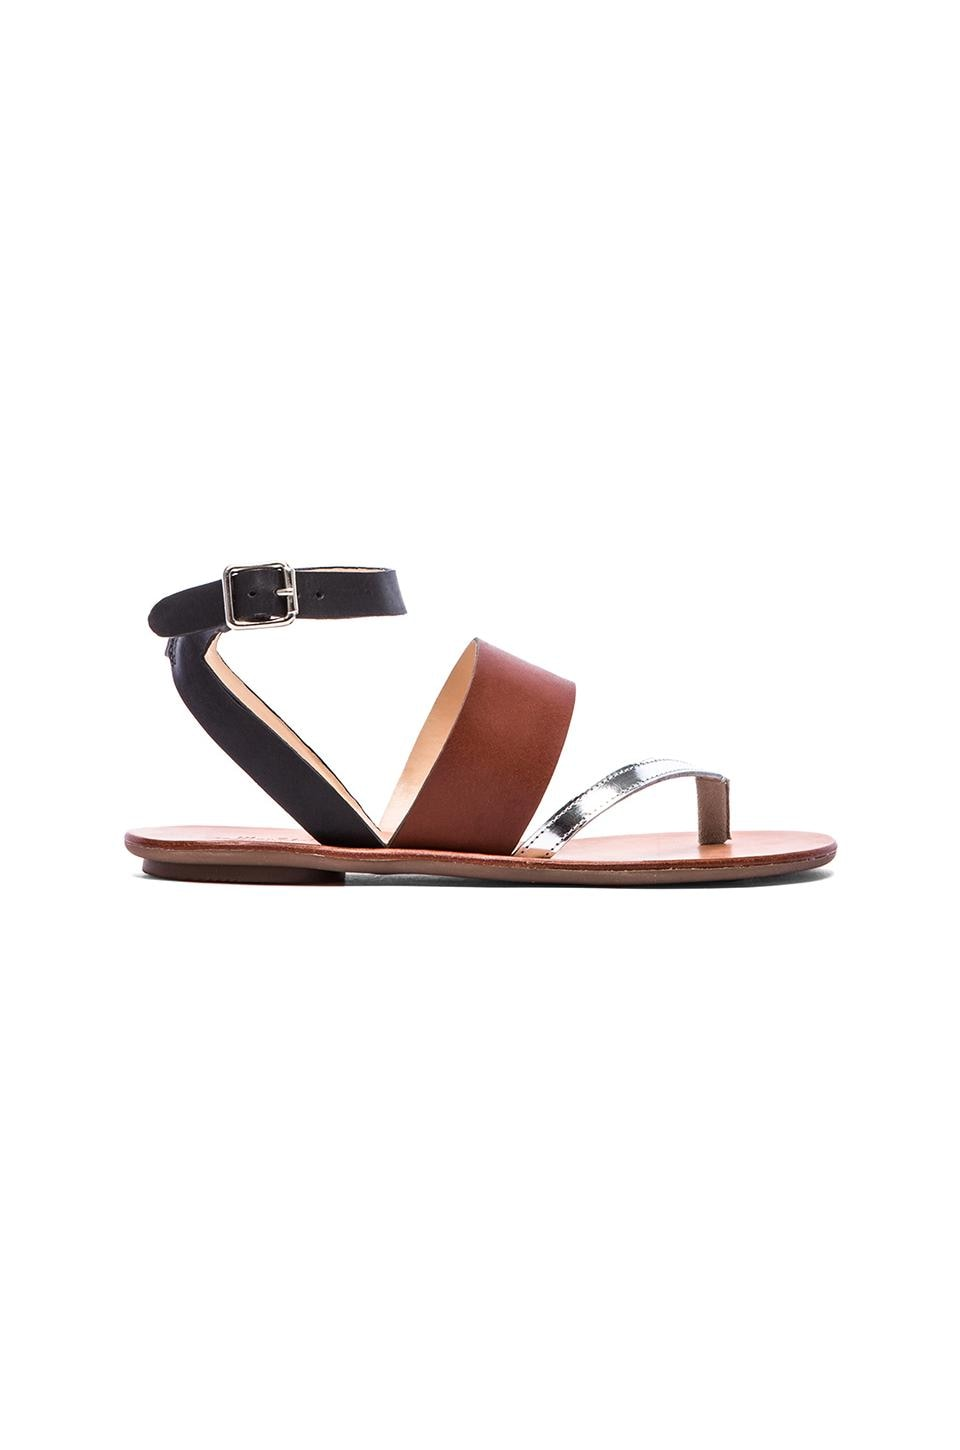 Loeffler Randall Sunny Sandal in Saddle Mix